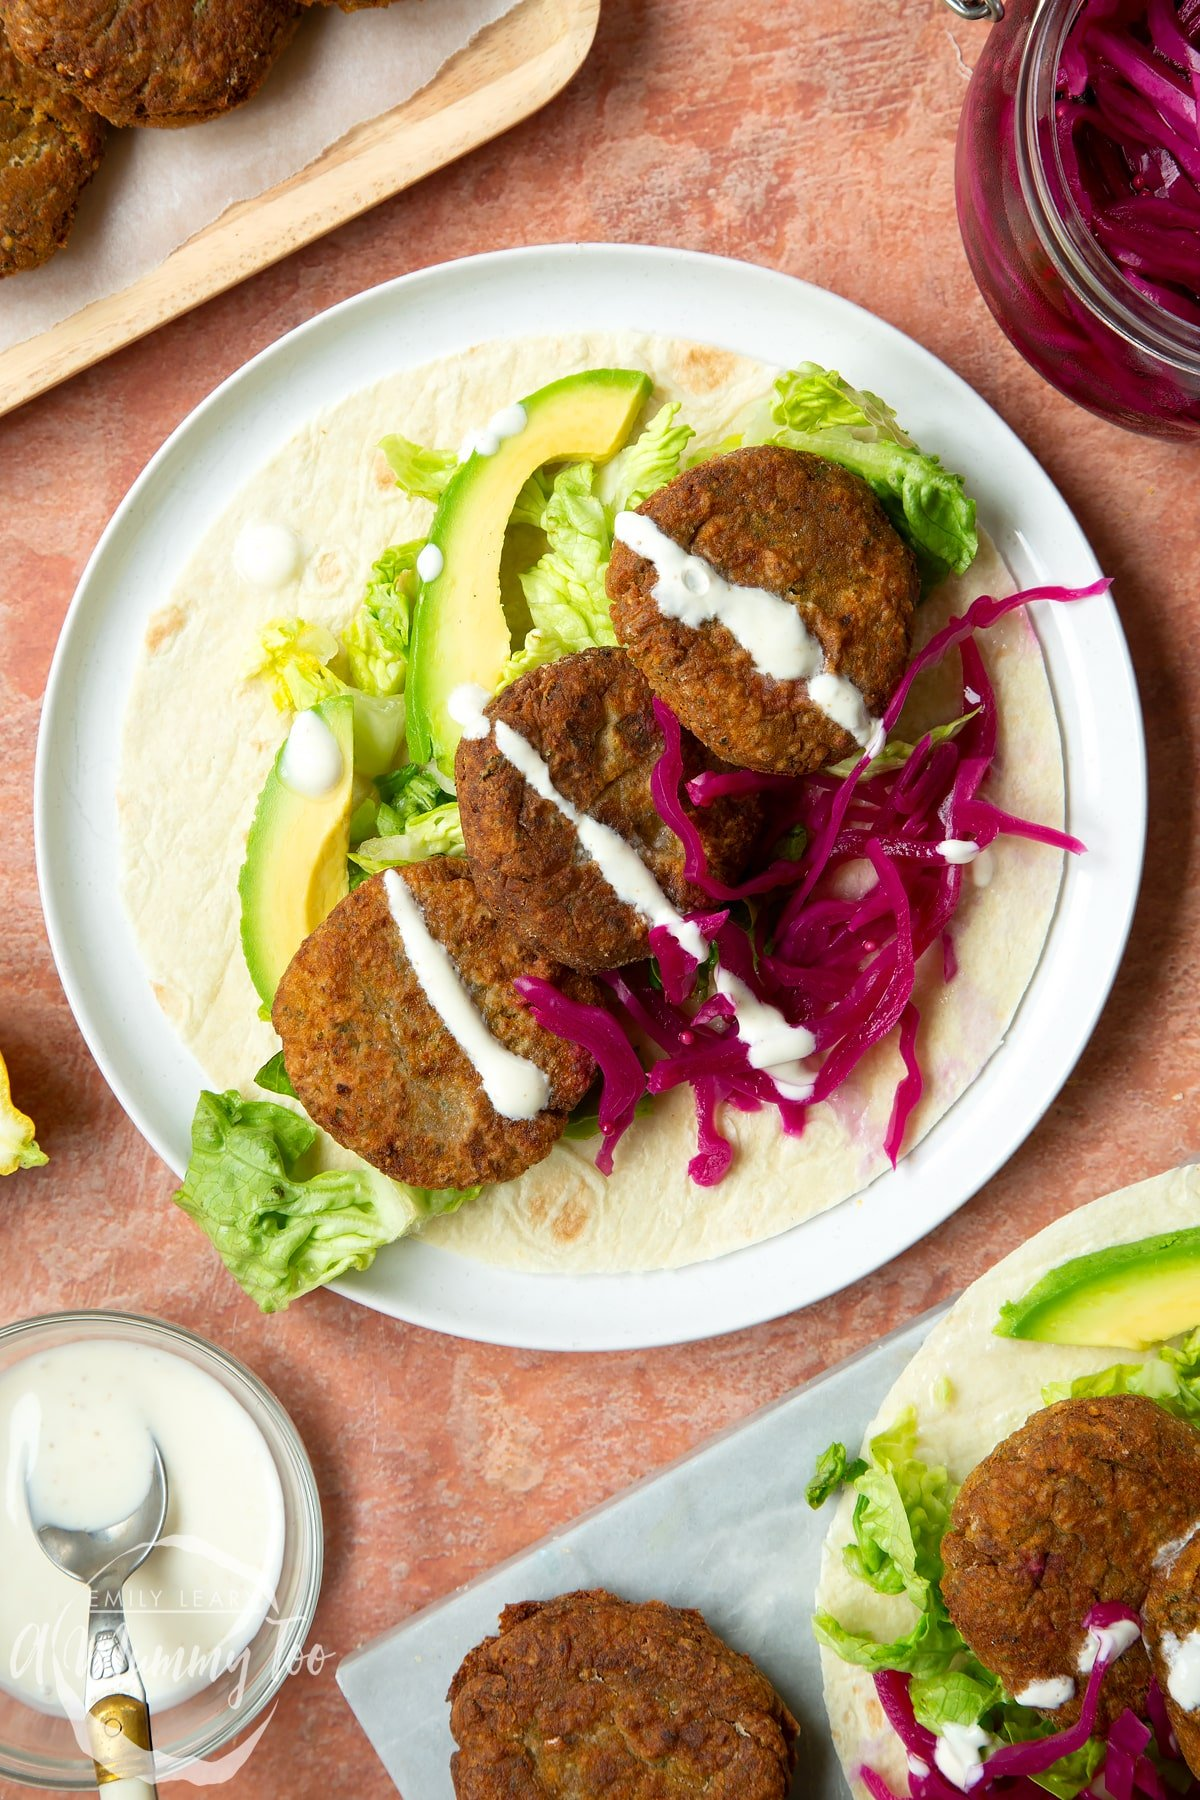 A harissa falafel wrap arranged on a plate with pickled cabbage and salad, drizzled with tahini dressing.